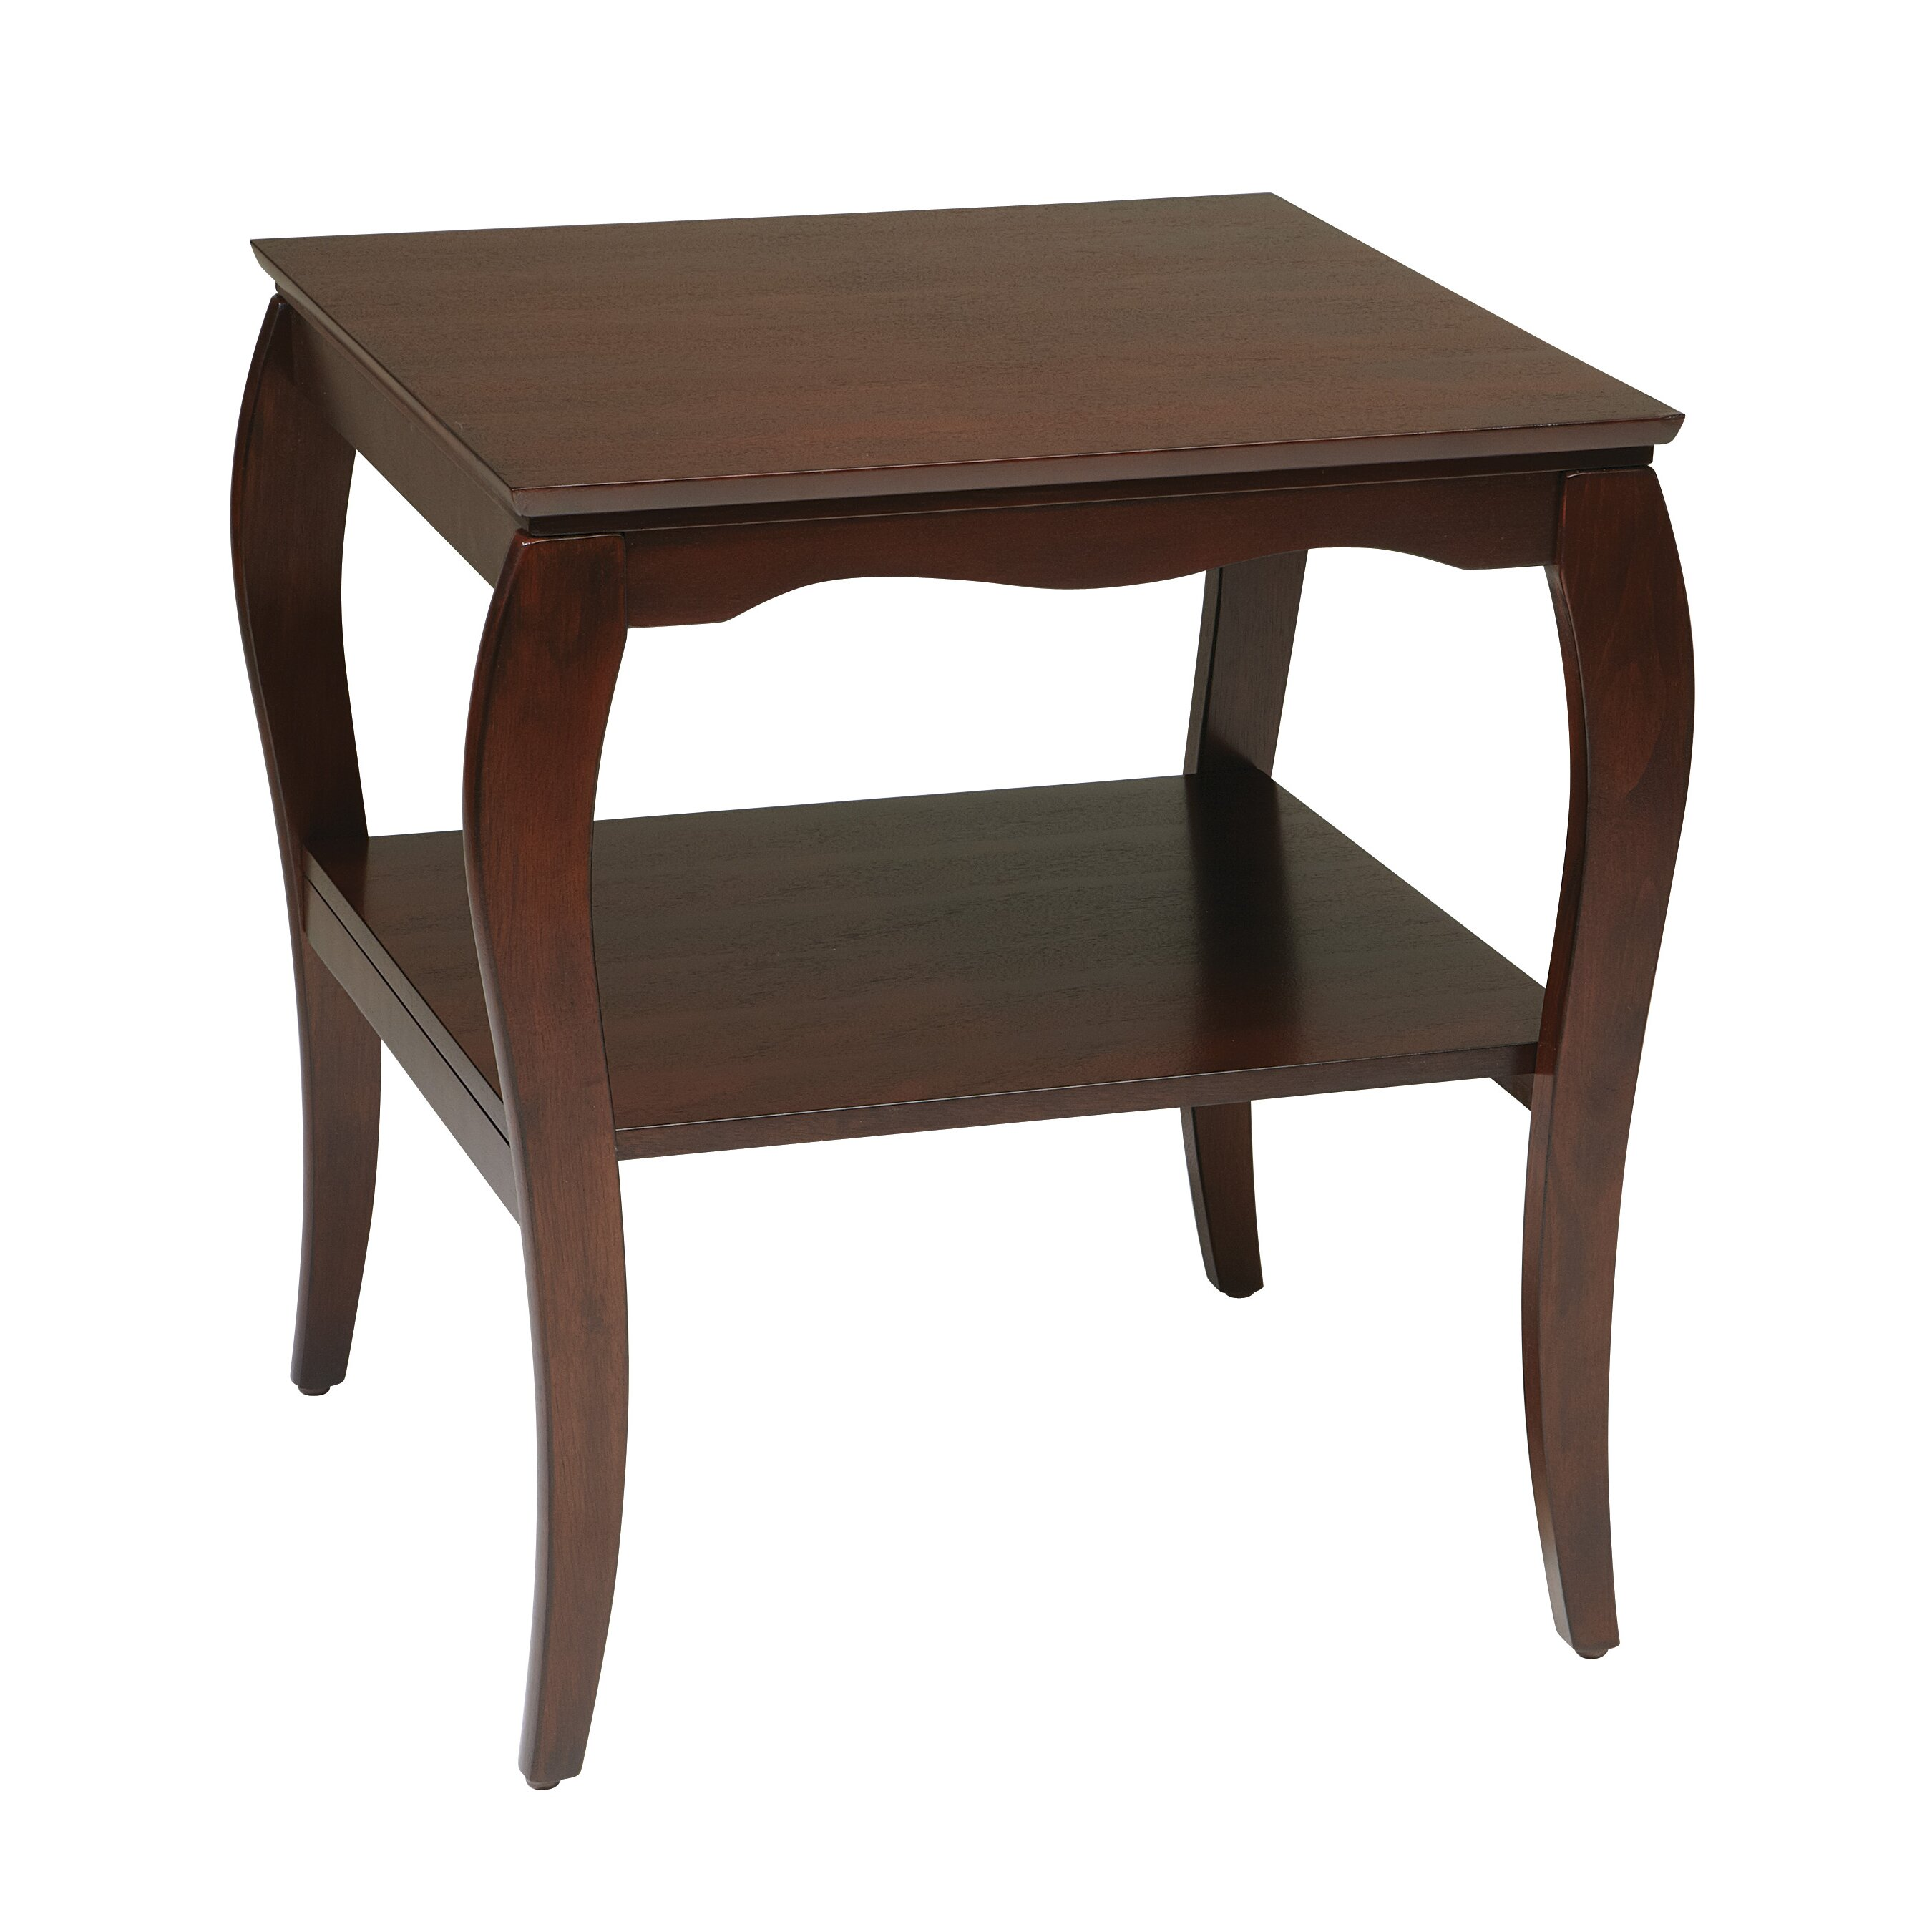 Osp designs brighton end table reviews wayfair for End table patterns